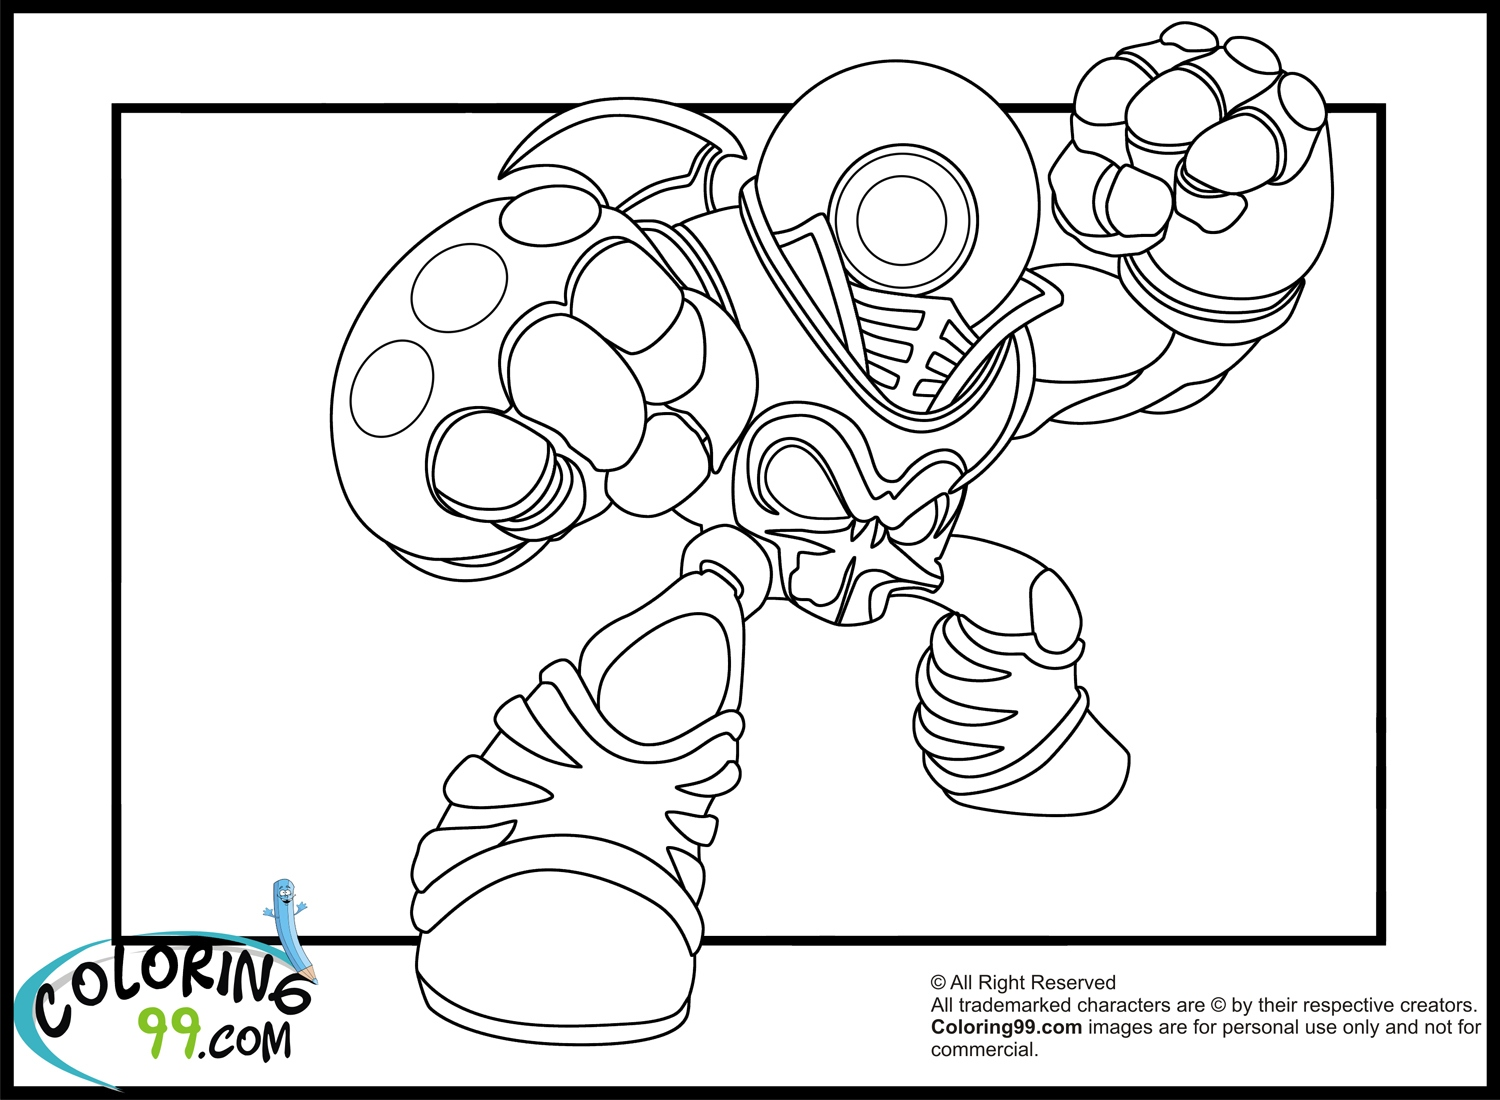 New York Giants Coloring Pages At Getcolorings